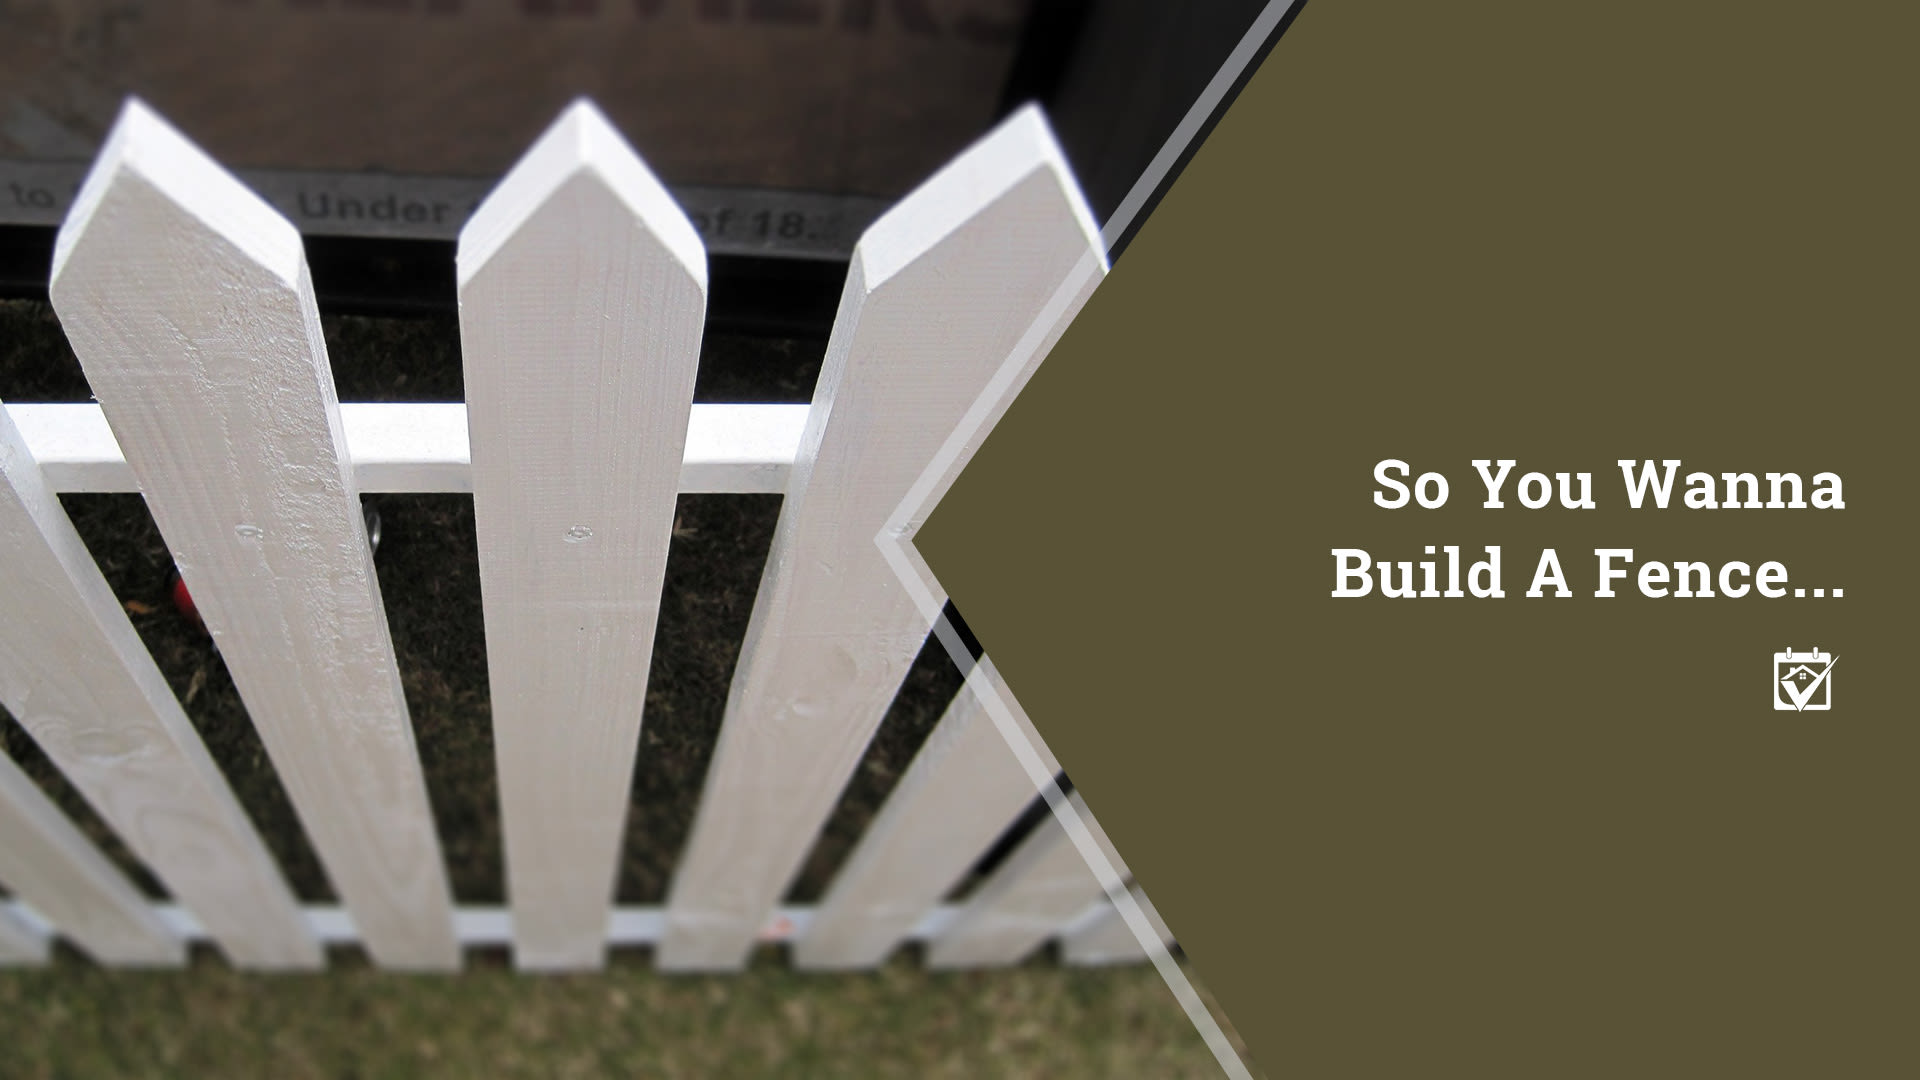 Fence-Building Tips for New Homeowners